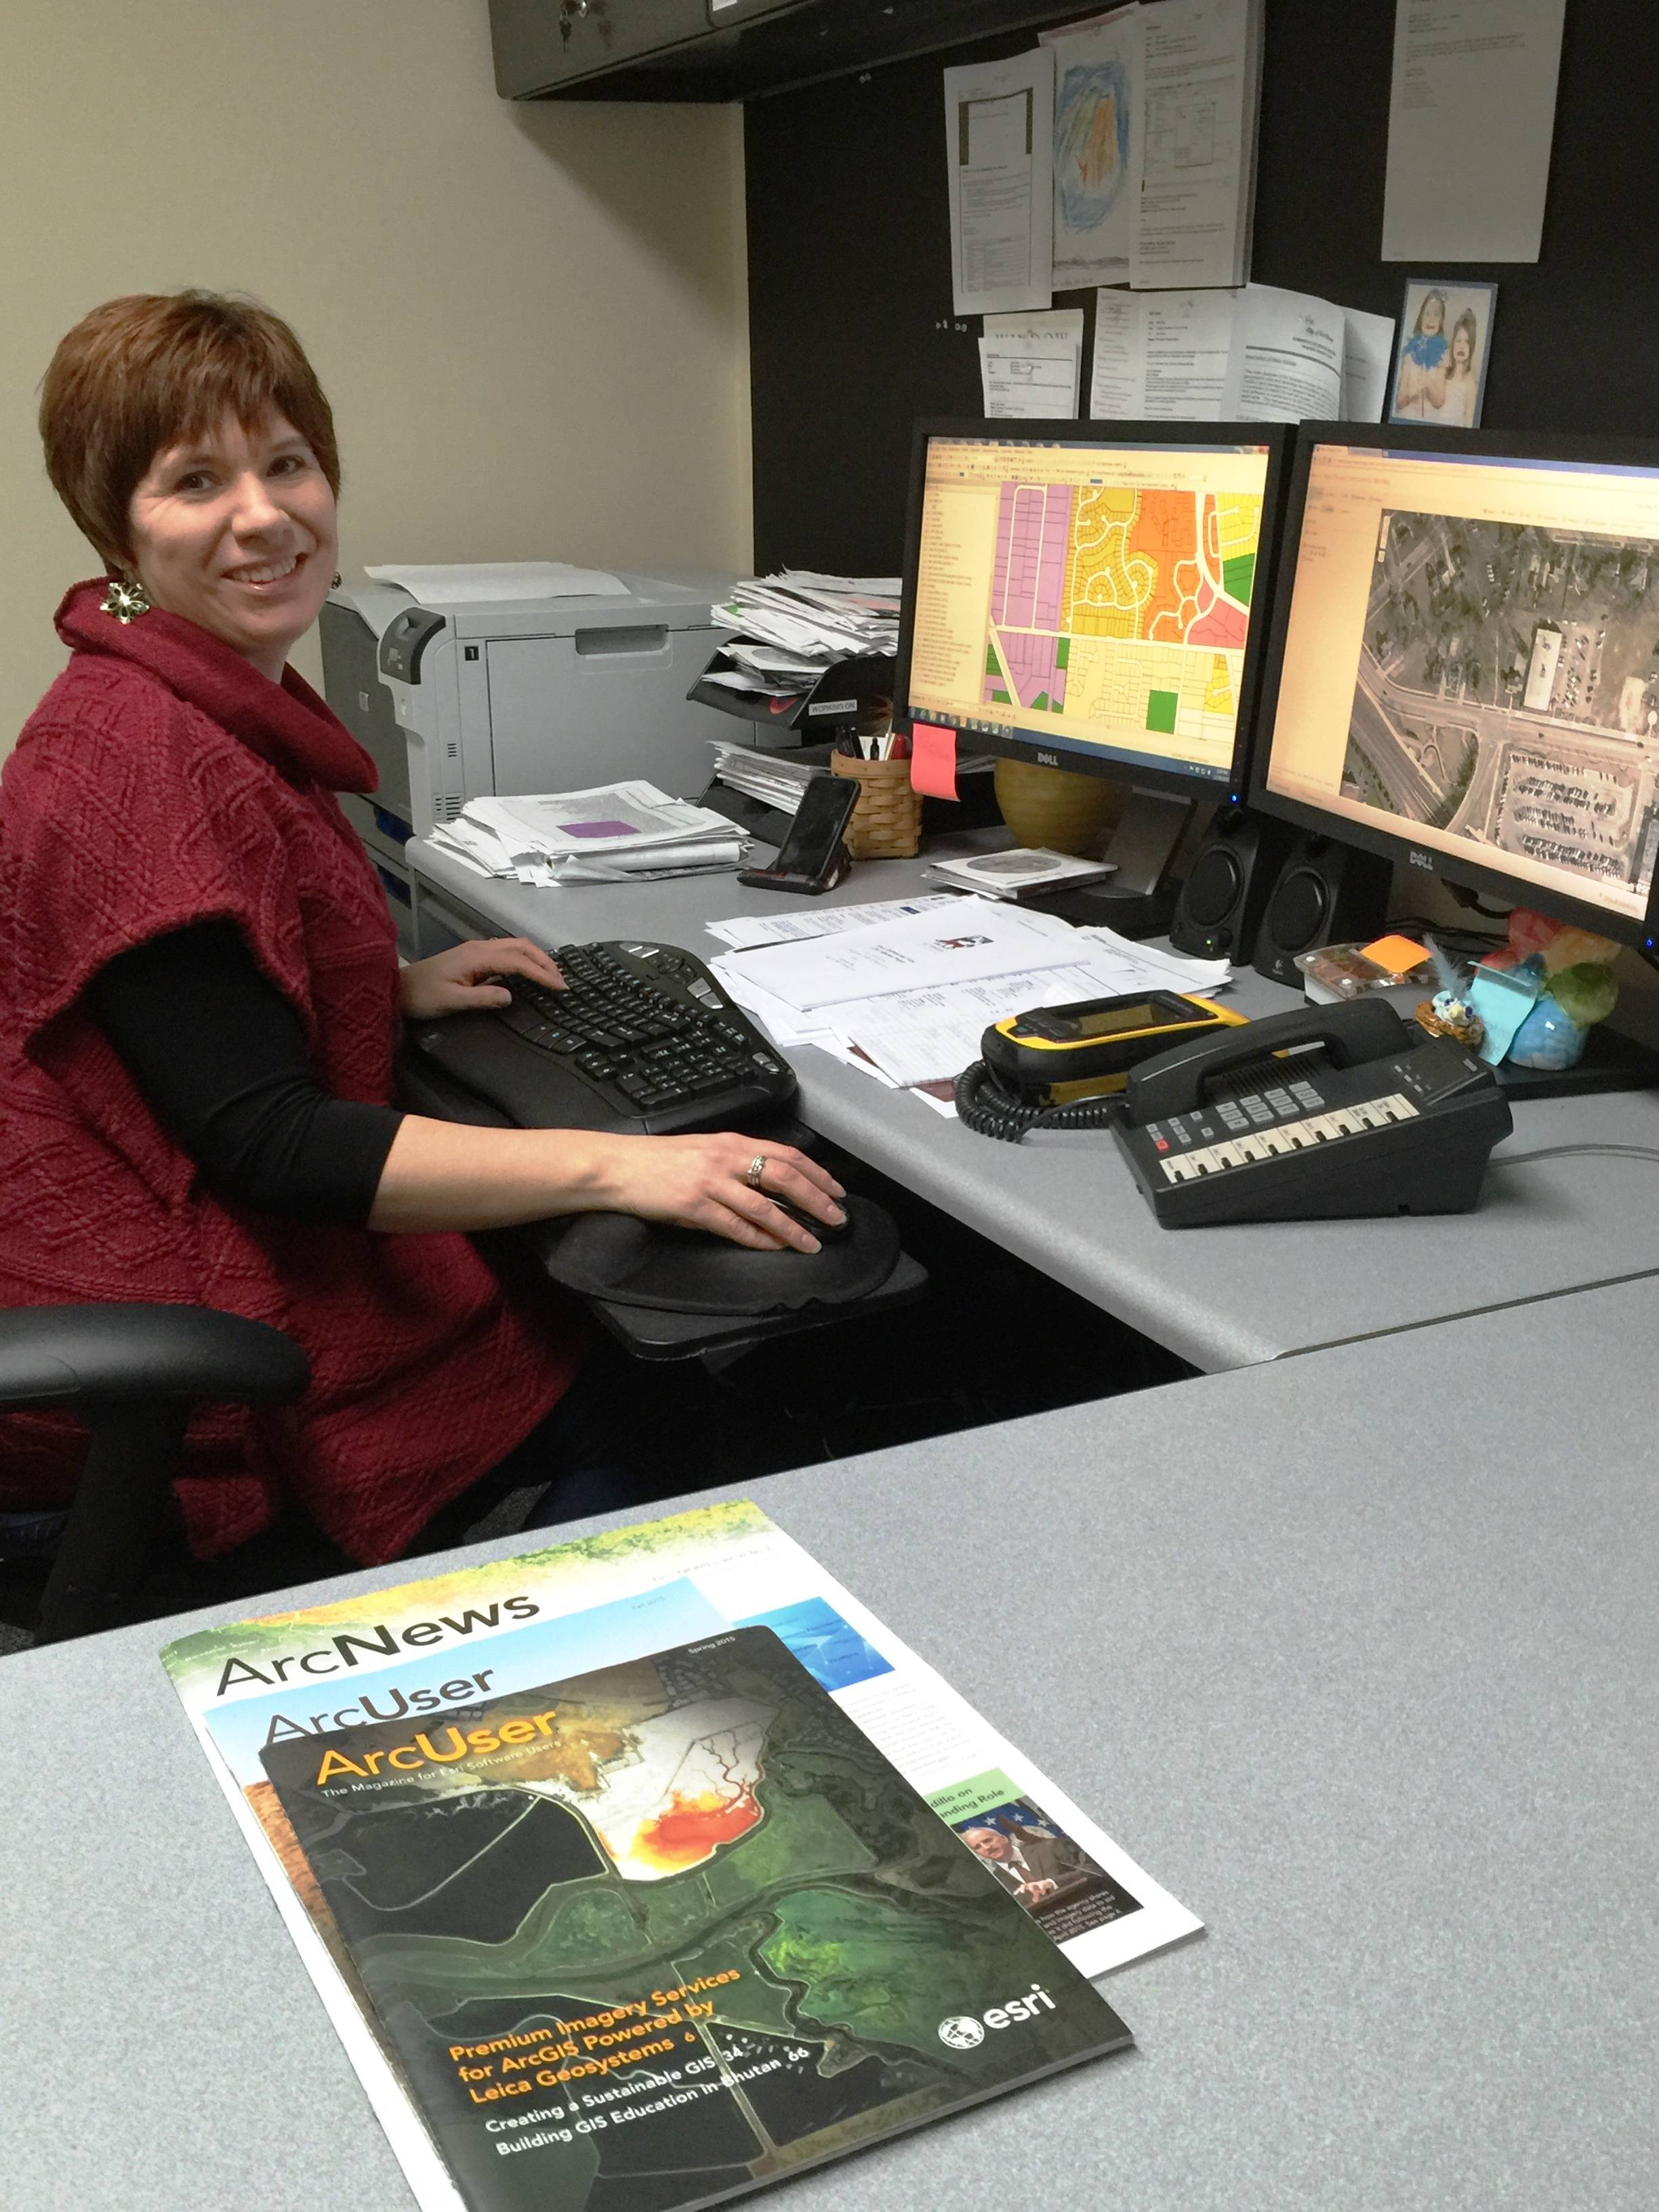 GIS Coordinator Vicki Hynes at work in West ChicagoRosemary Mackey